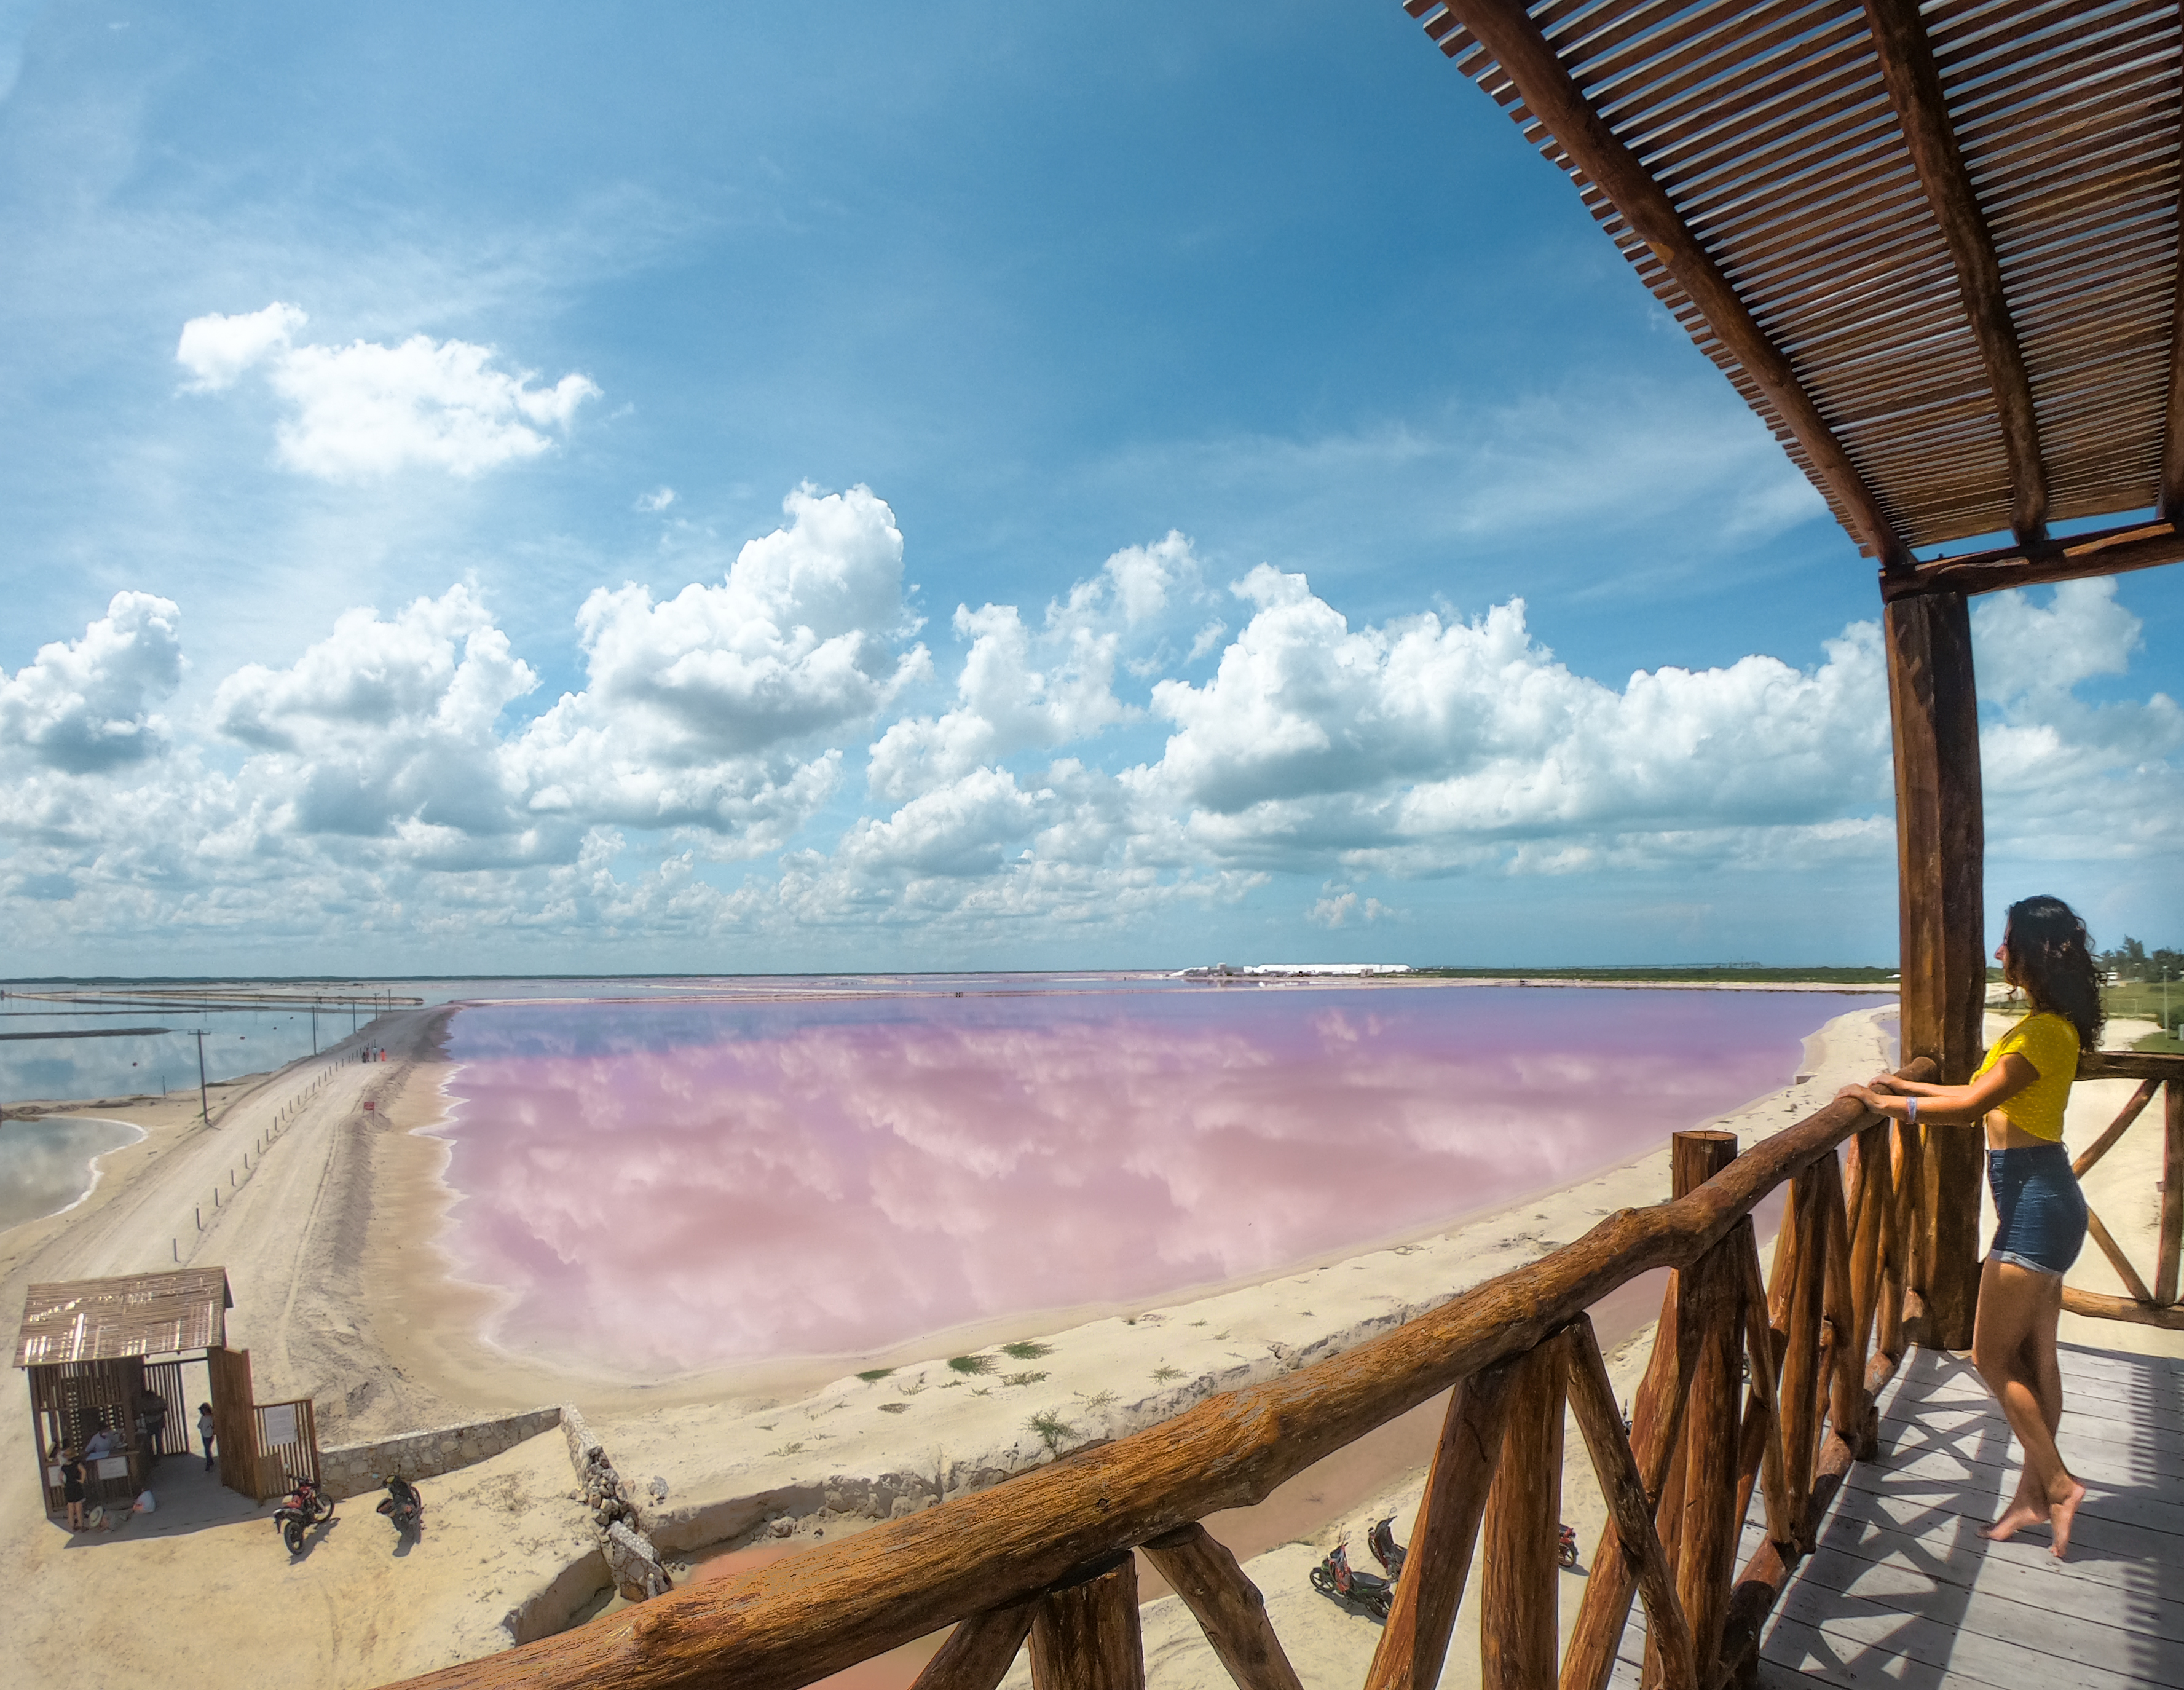 Las Coloradas as seen from the mirador, Mexico